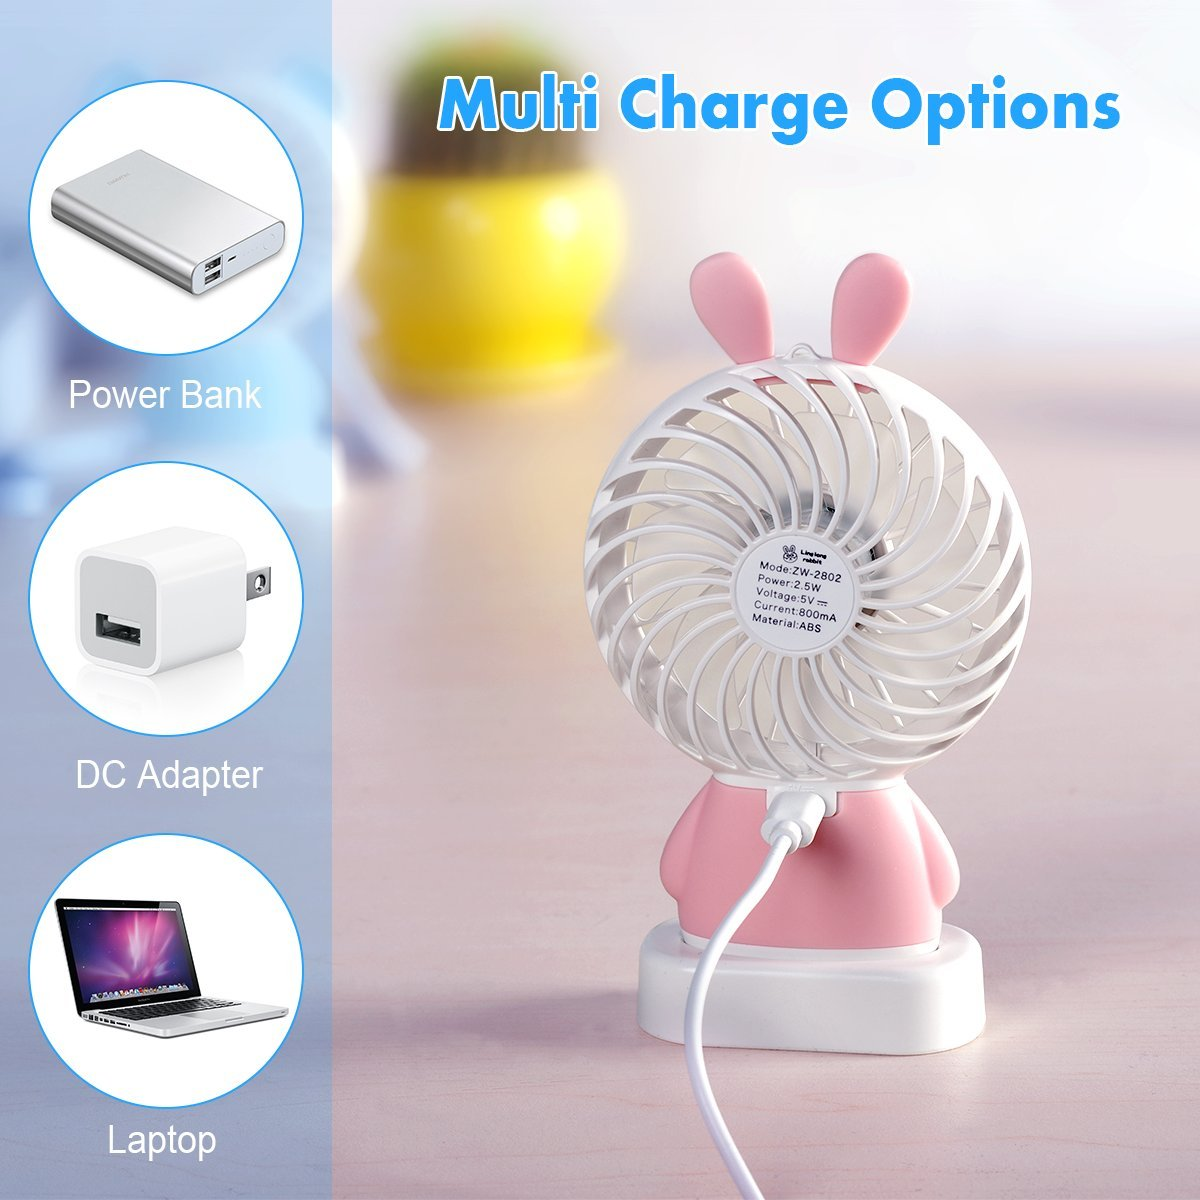 BONTIME Portable Fan - Mini Hand held Fan, Rechargeable USB Fan with Colorful Night Light, 2 Speeds, Cooling for Traveling, Fishing, Camping by BONTIME (Image #9)